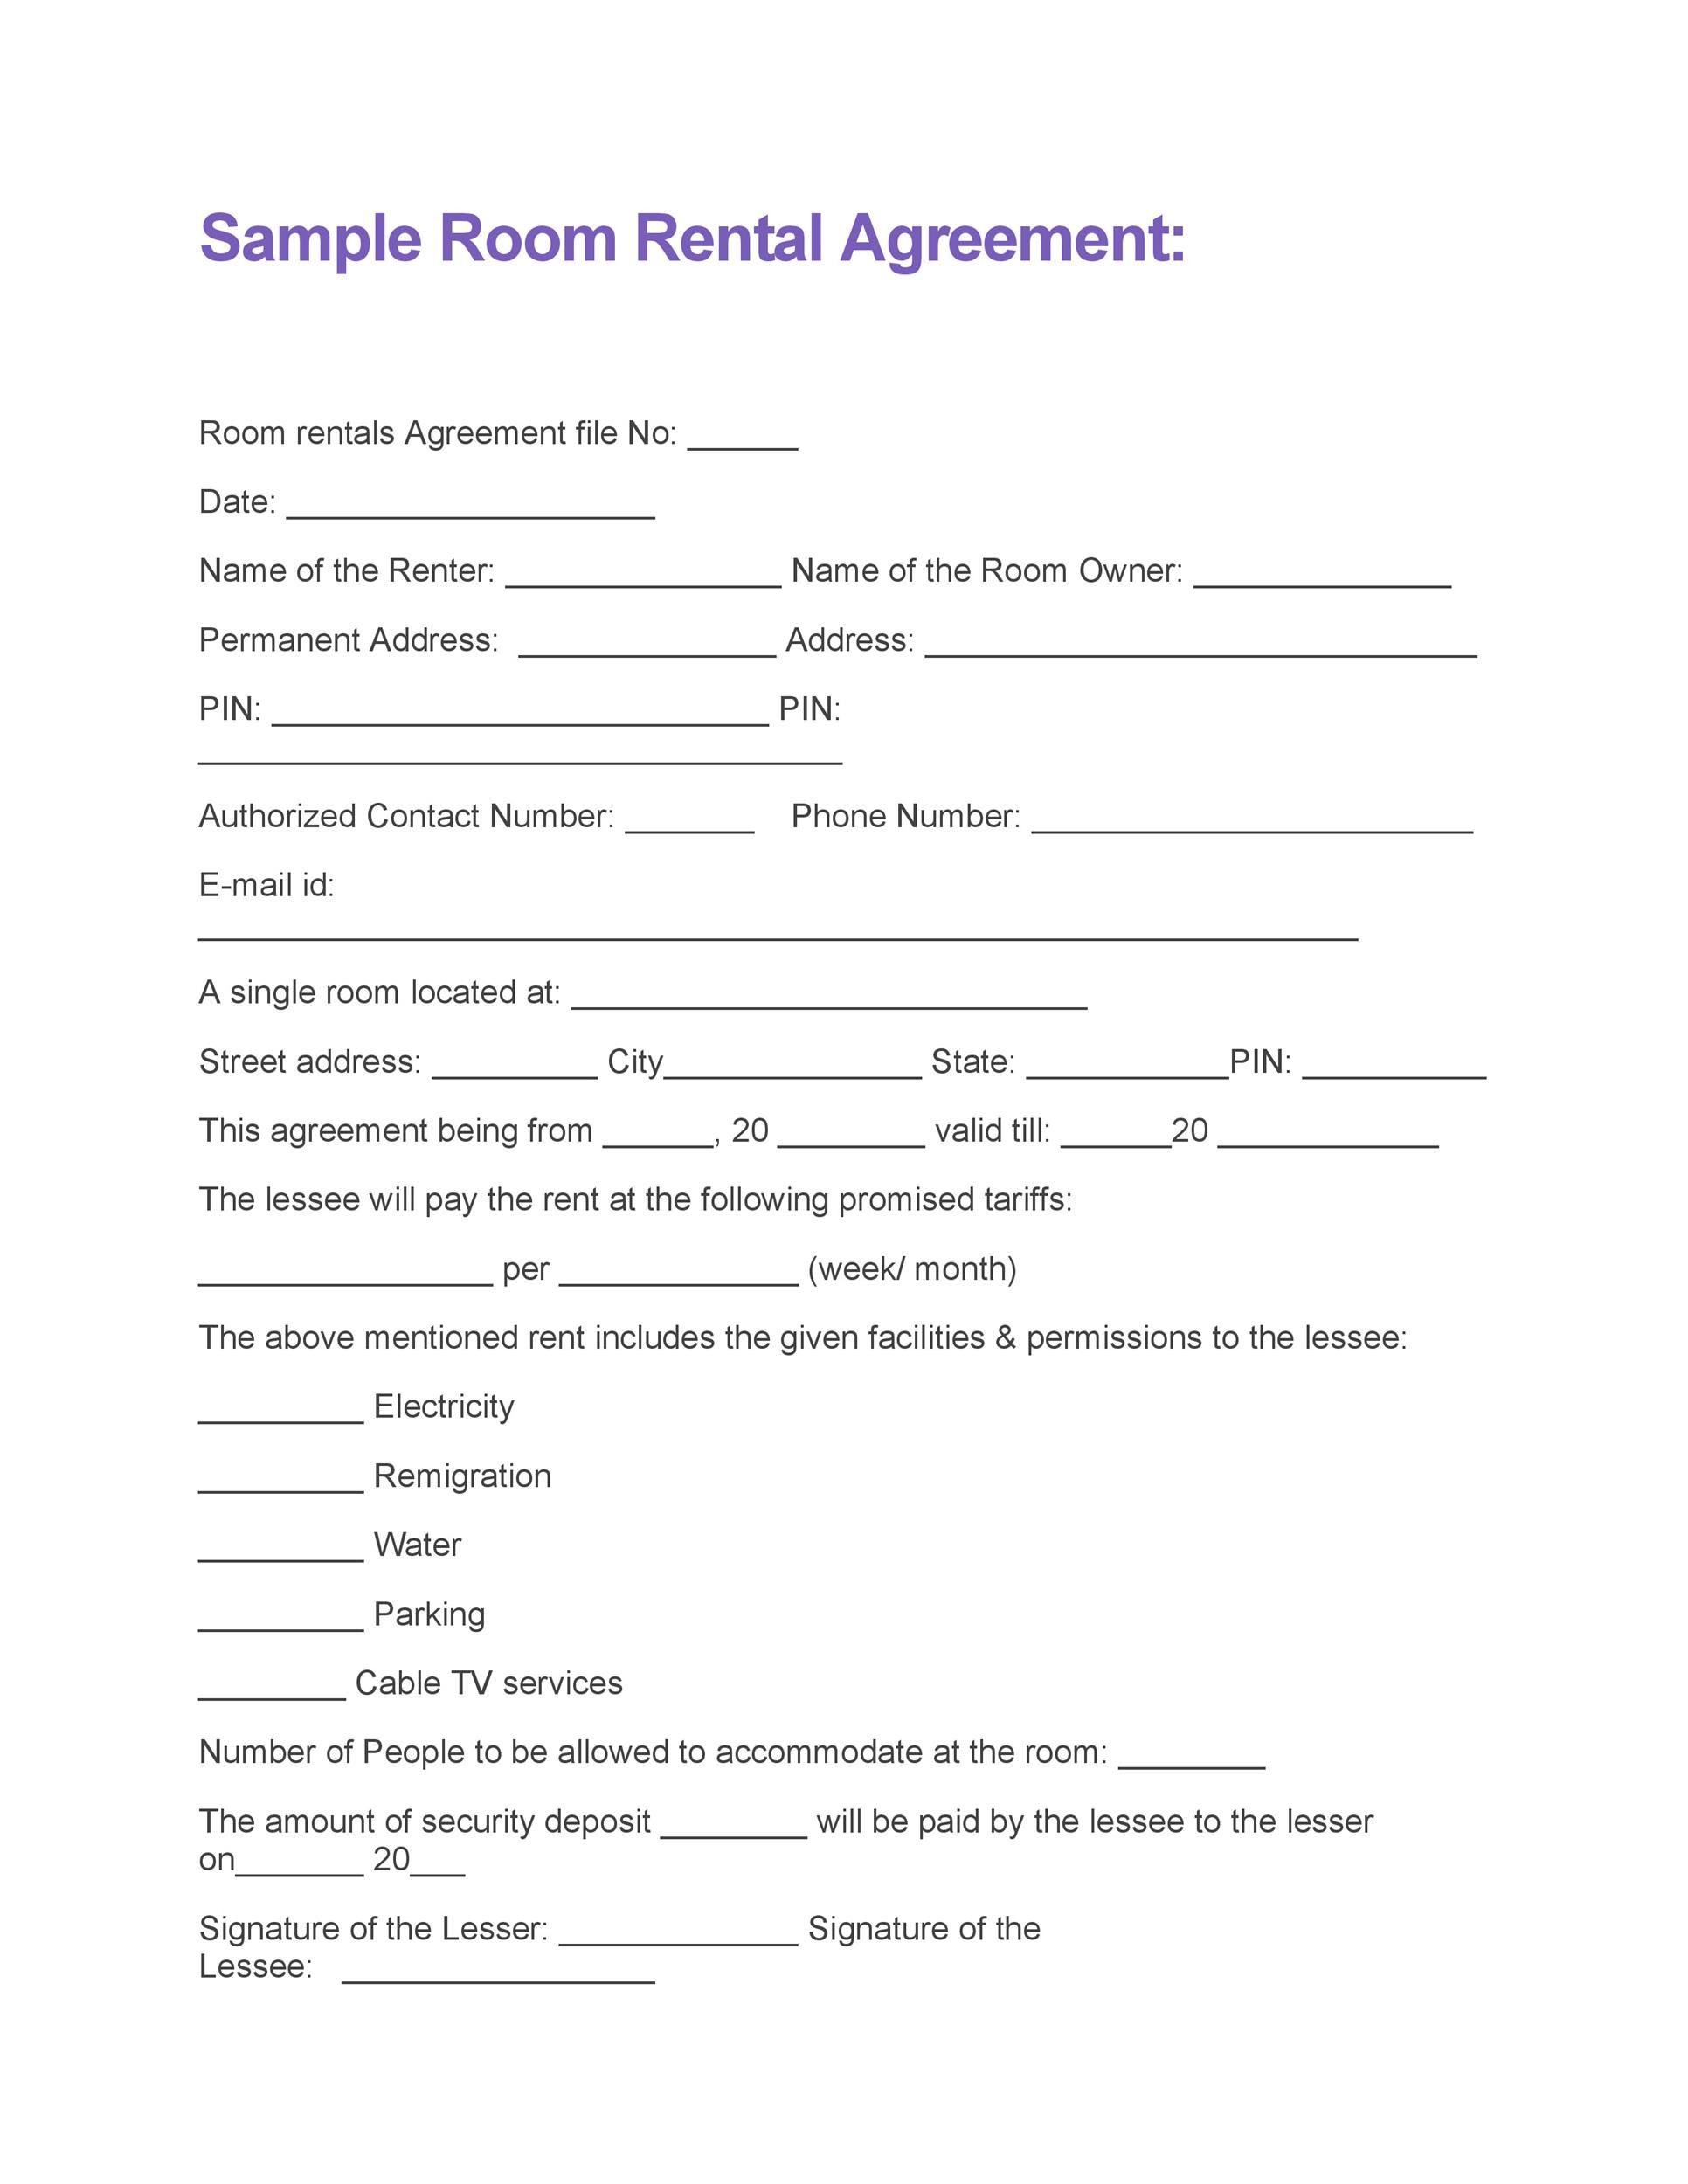 Simple Contract Agreement Printable Sample Rental Lease Agreement